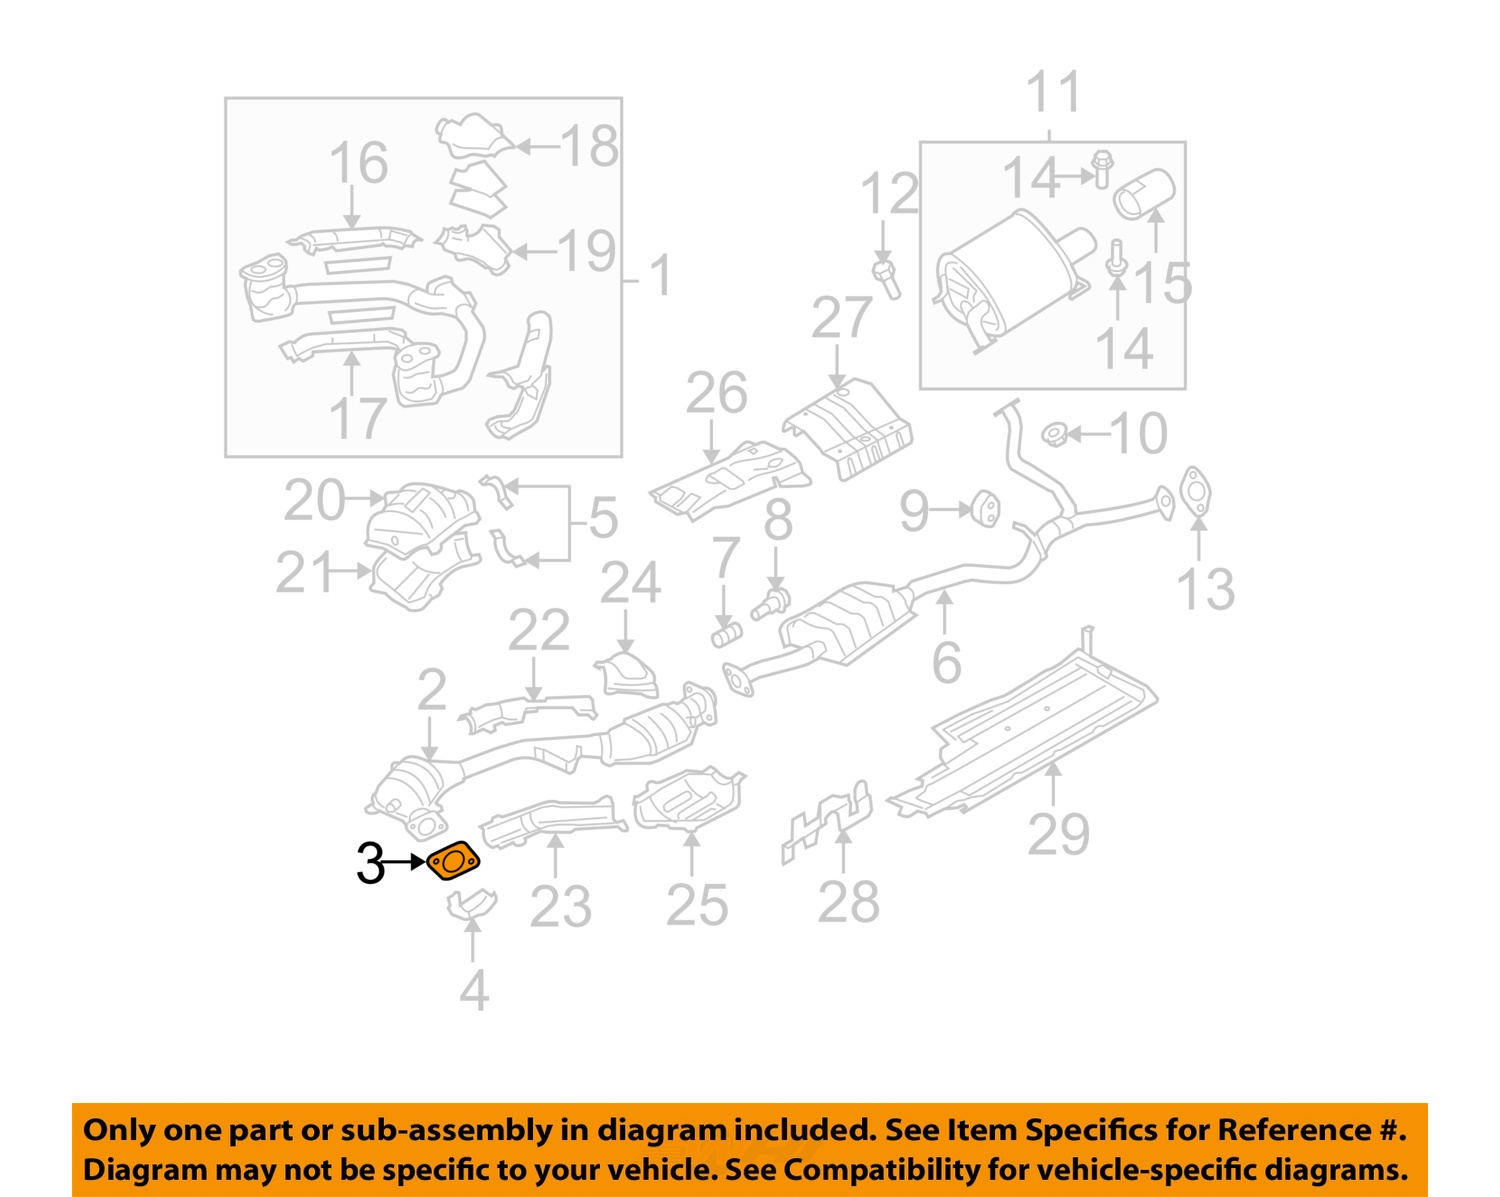 2005 subaru outback exhaust system diagram kenmore he2 plus washer parts oem 2 5l h4 catalytic